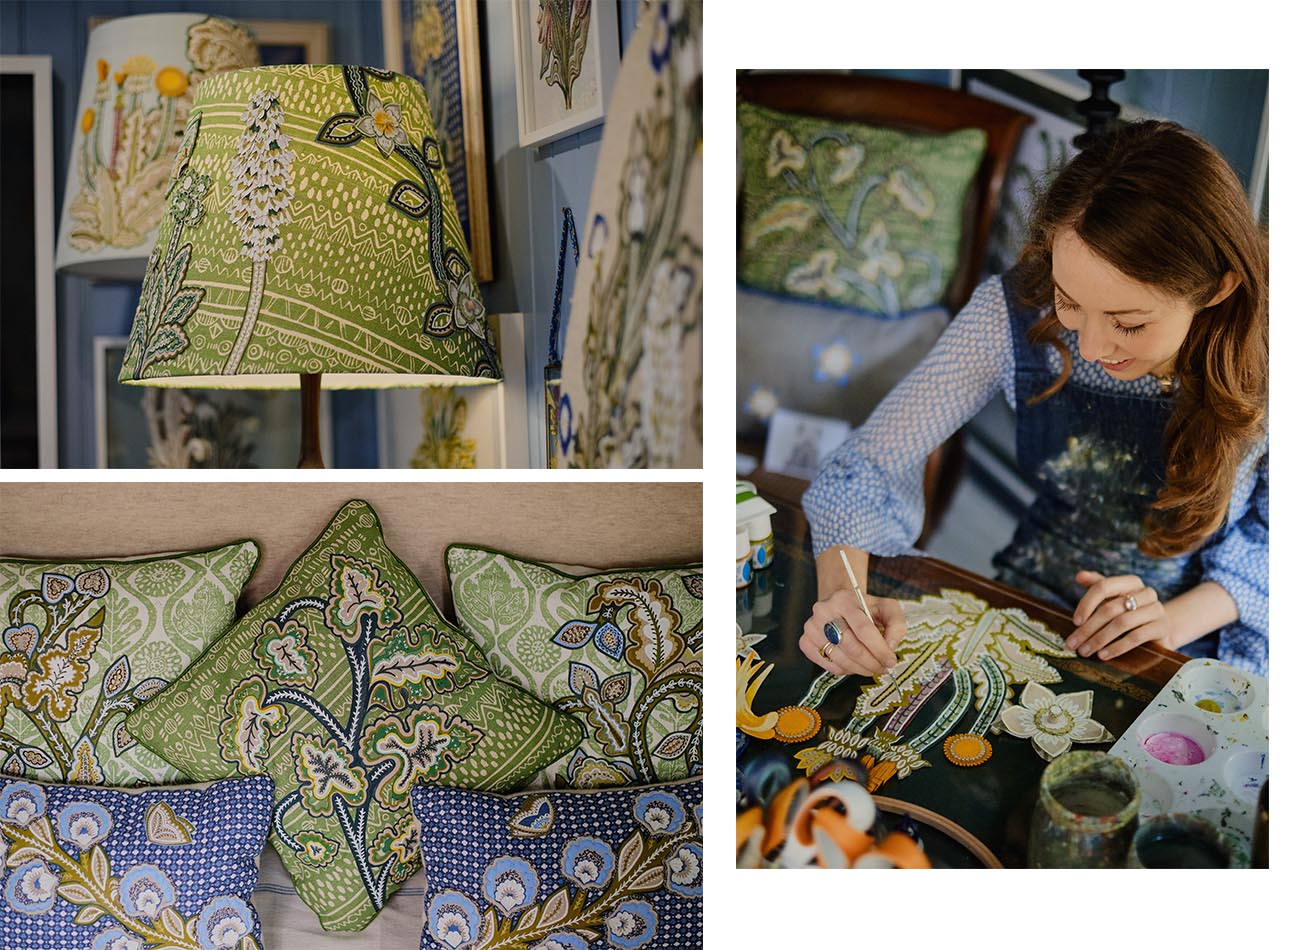 textile artist Natasha Hulse - an alumna of Chelsea College of Art and Design, Natasha creates intricate nature-inspired textiles using embroidery and applique - from bespoke headboards to cushion covers.